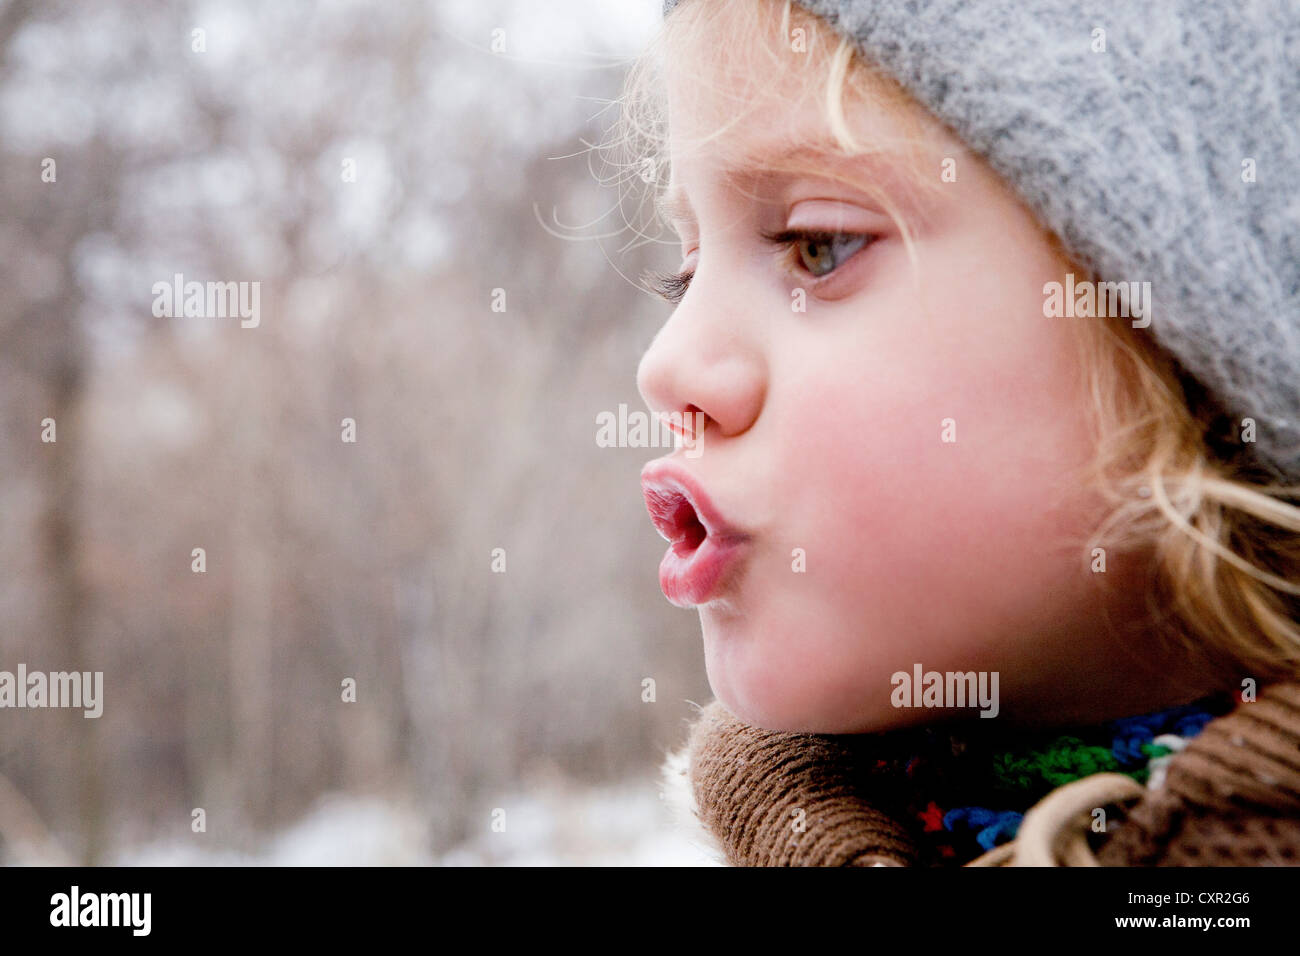 Little girl looking at her breath in the cold air - Stock Image